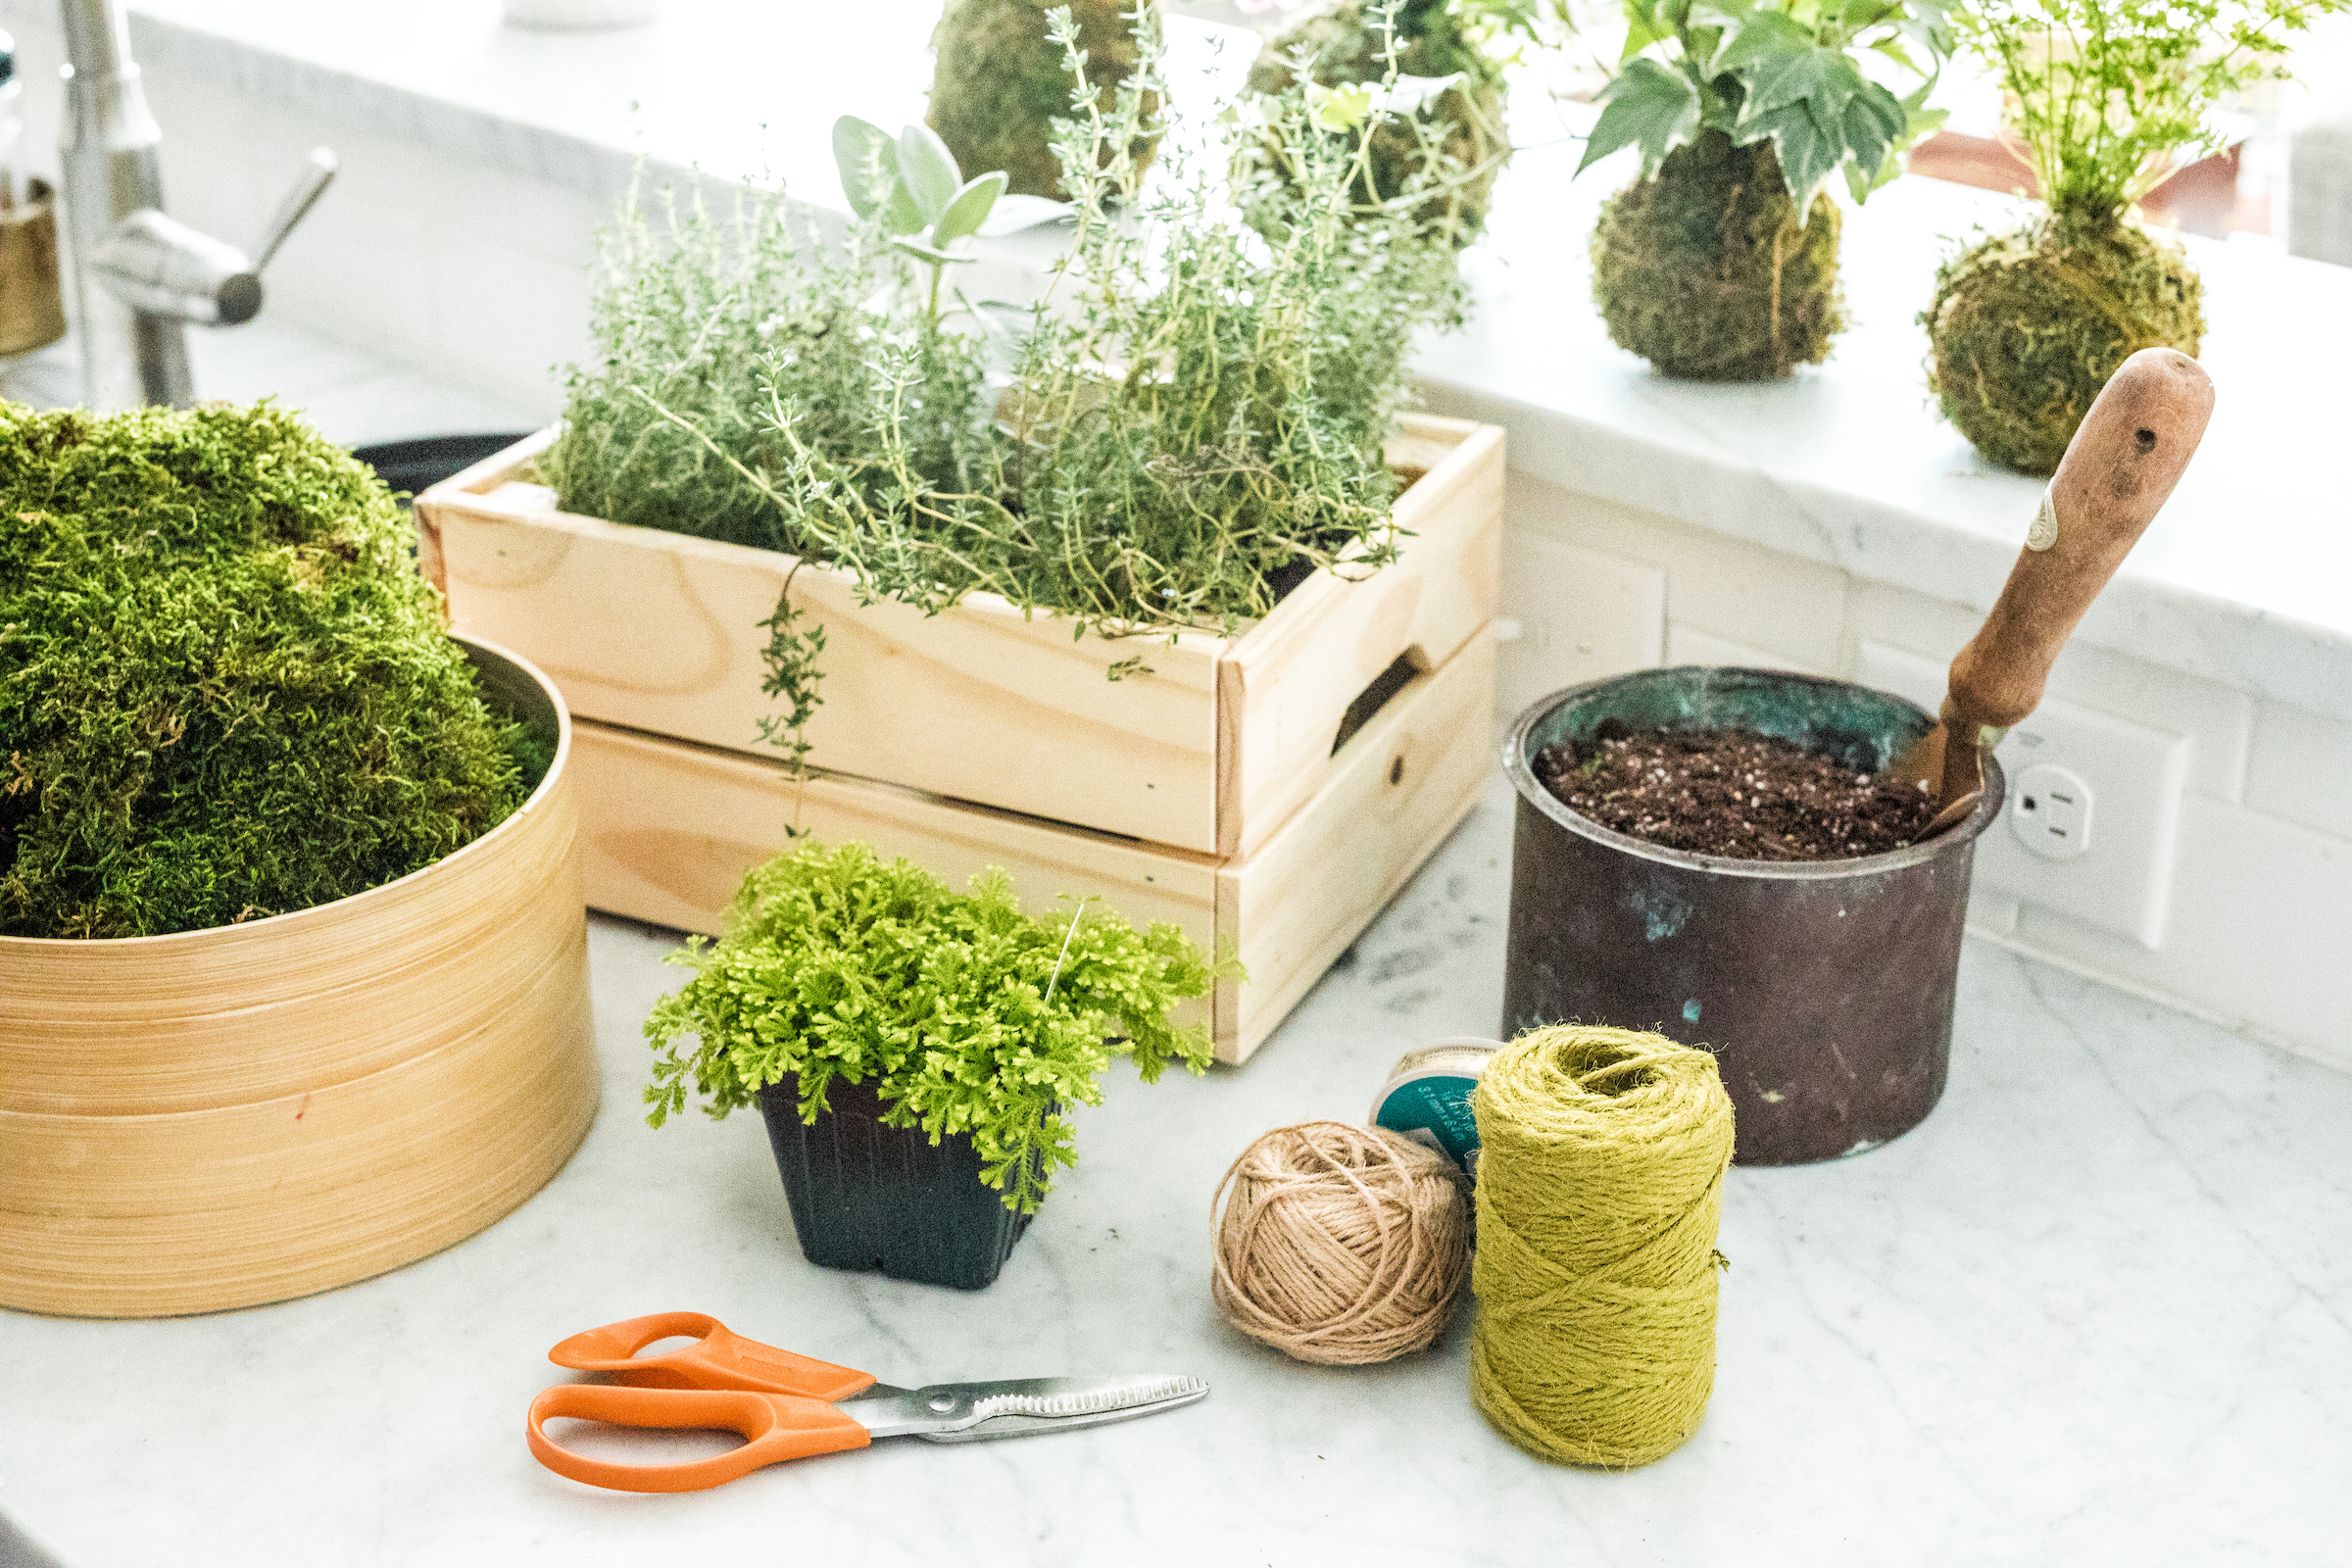 Prepare your workstation, wearing gloves to protect your hands from dye in the moss. Soak a sheet of moss (shown in container at far left) in a container of water until it is damp.